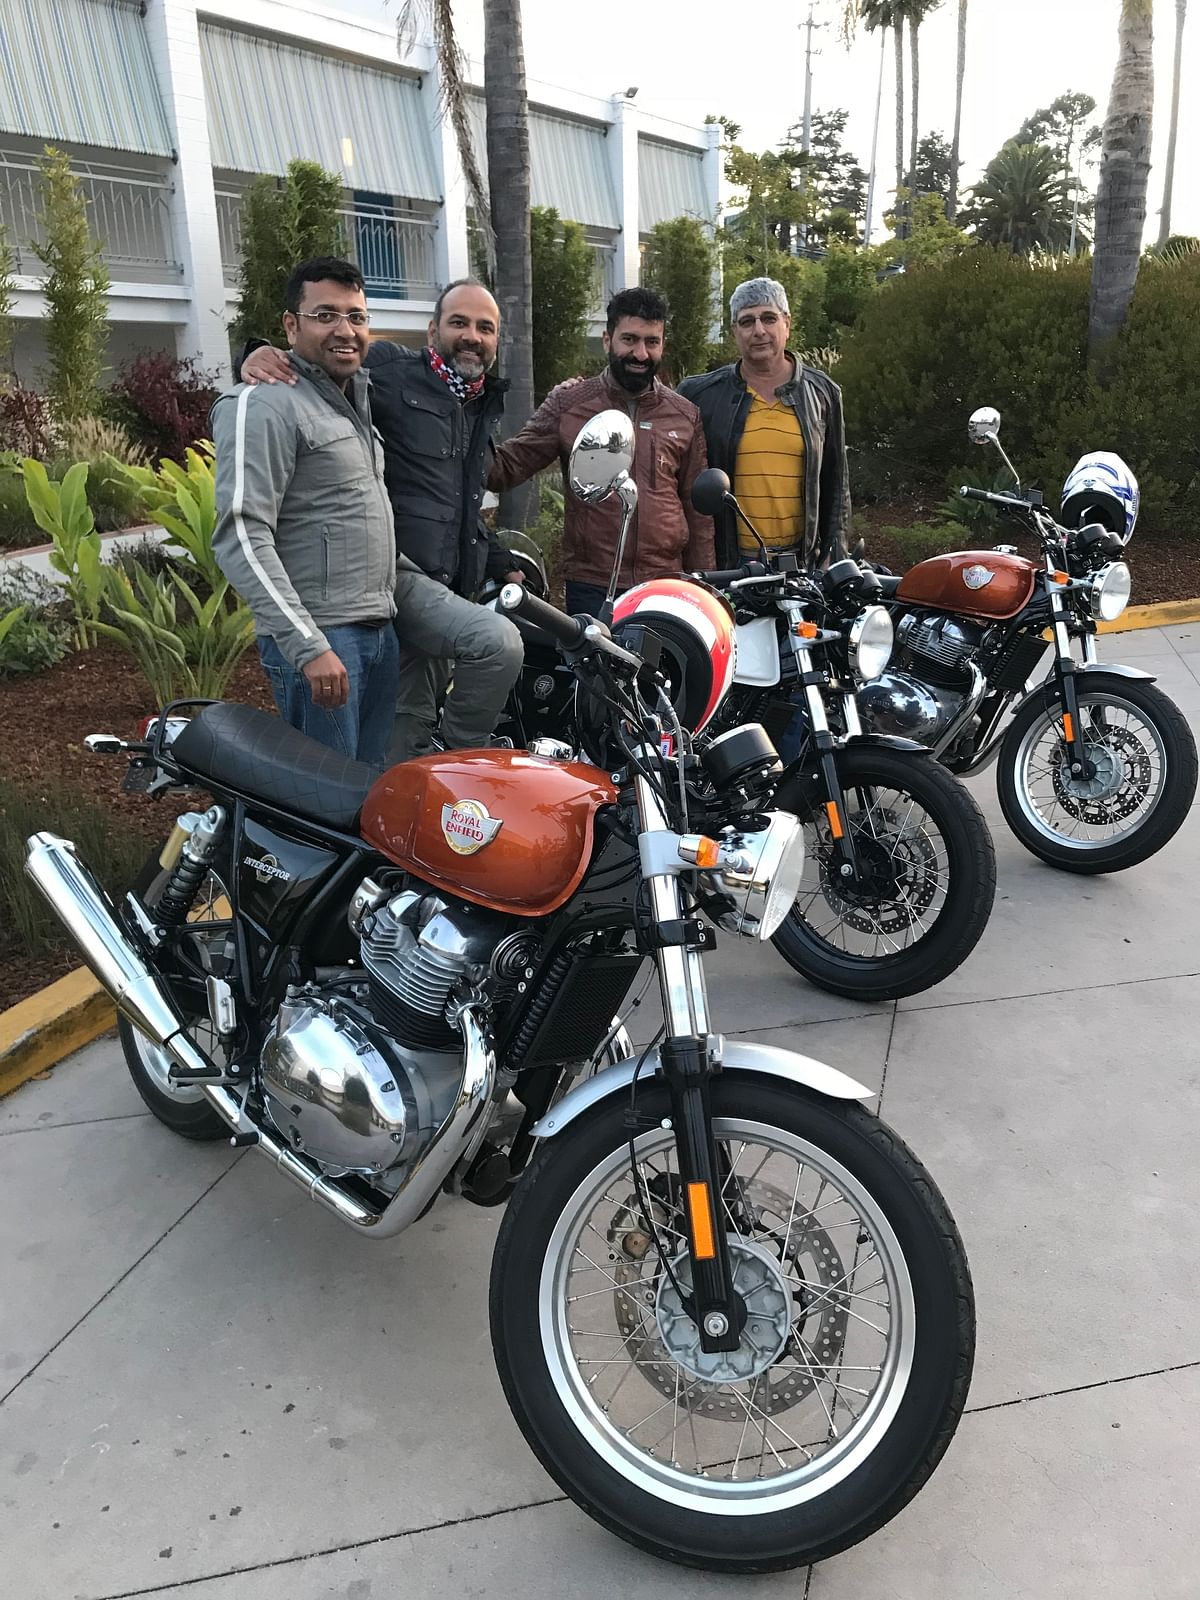 Royal Enfield brought Rudratej Singh into the Indian automotive world, after he'd spent over 16 years at Unilever.